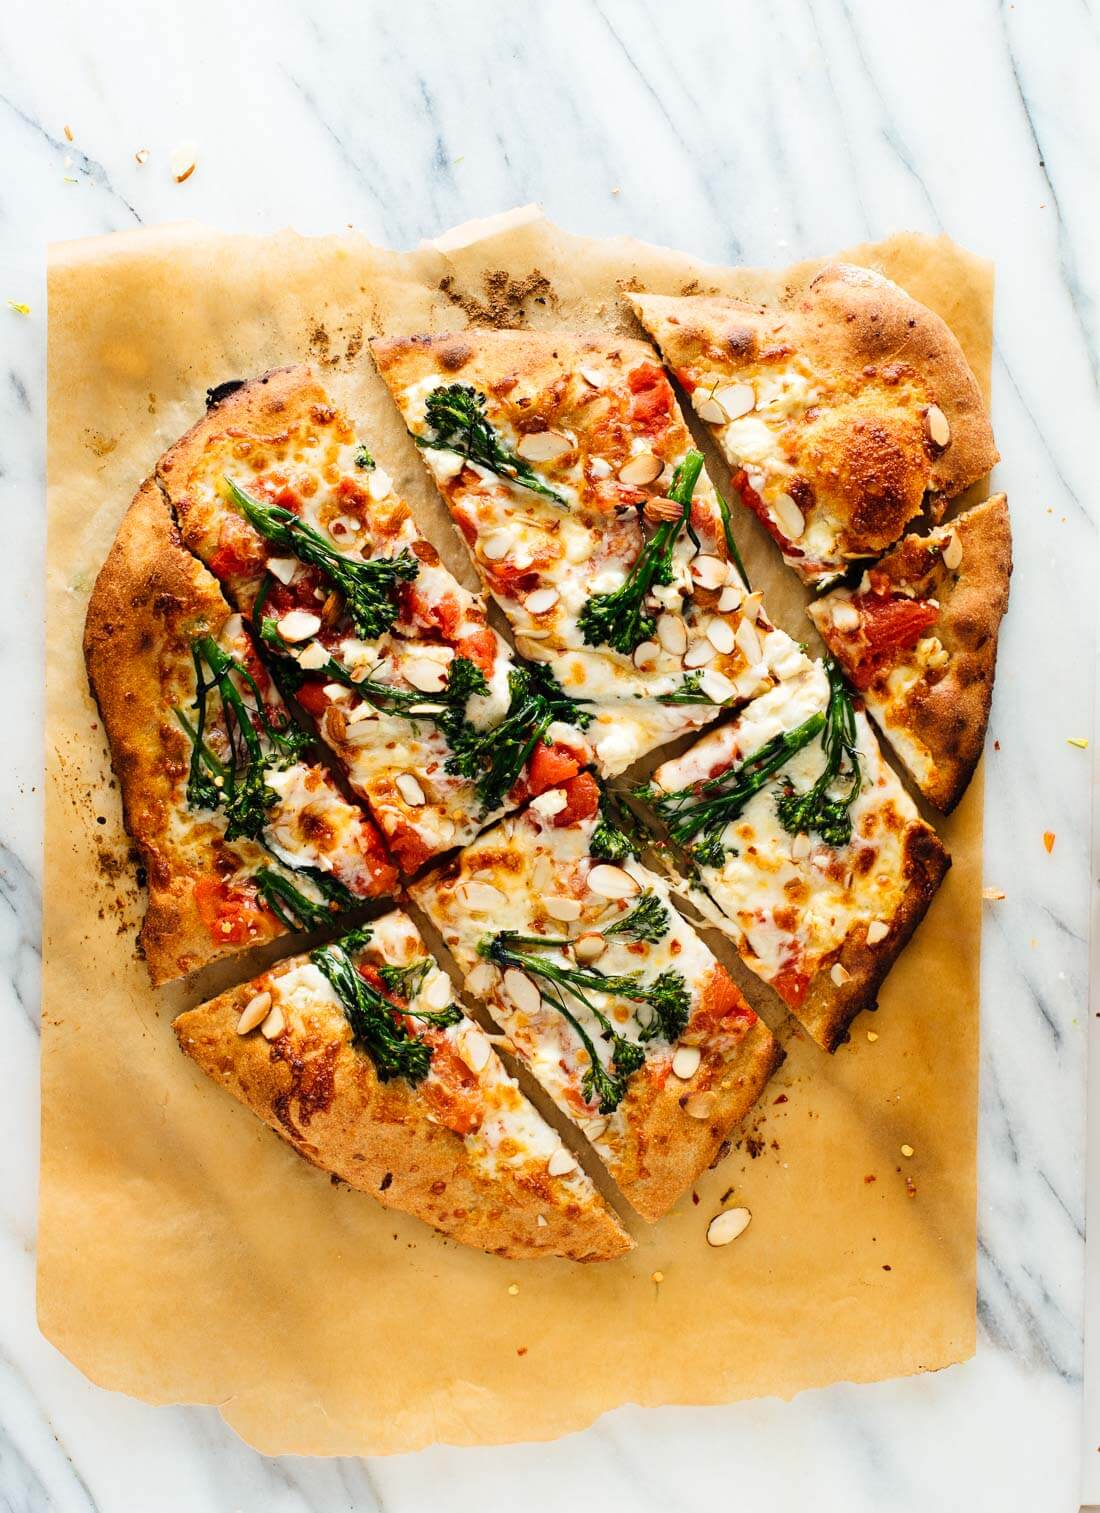 Amazing homemade broccolini pizza! It's my new favorite veggie pizza. Get the recipe at cookieandkate.com